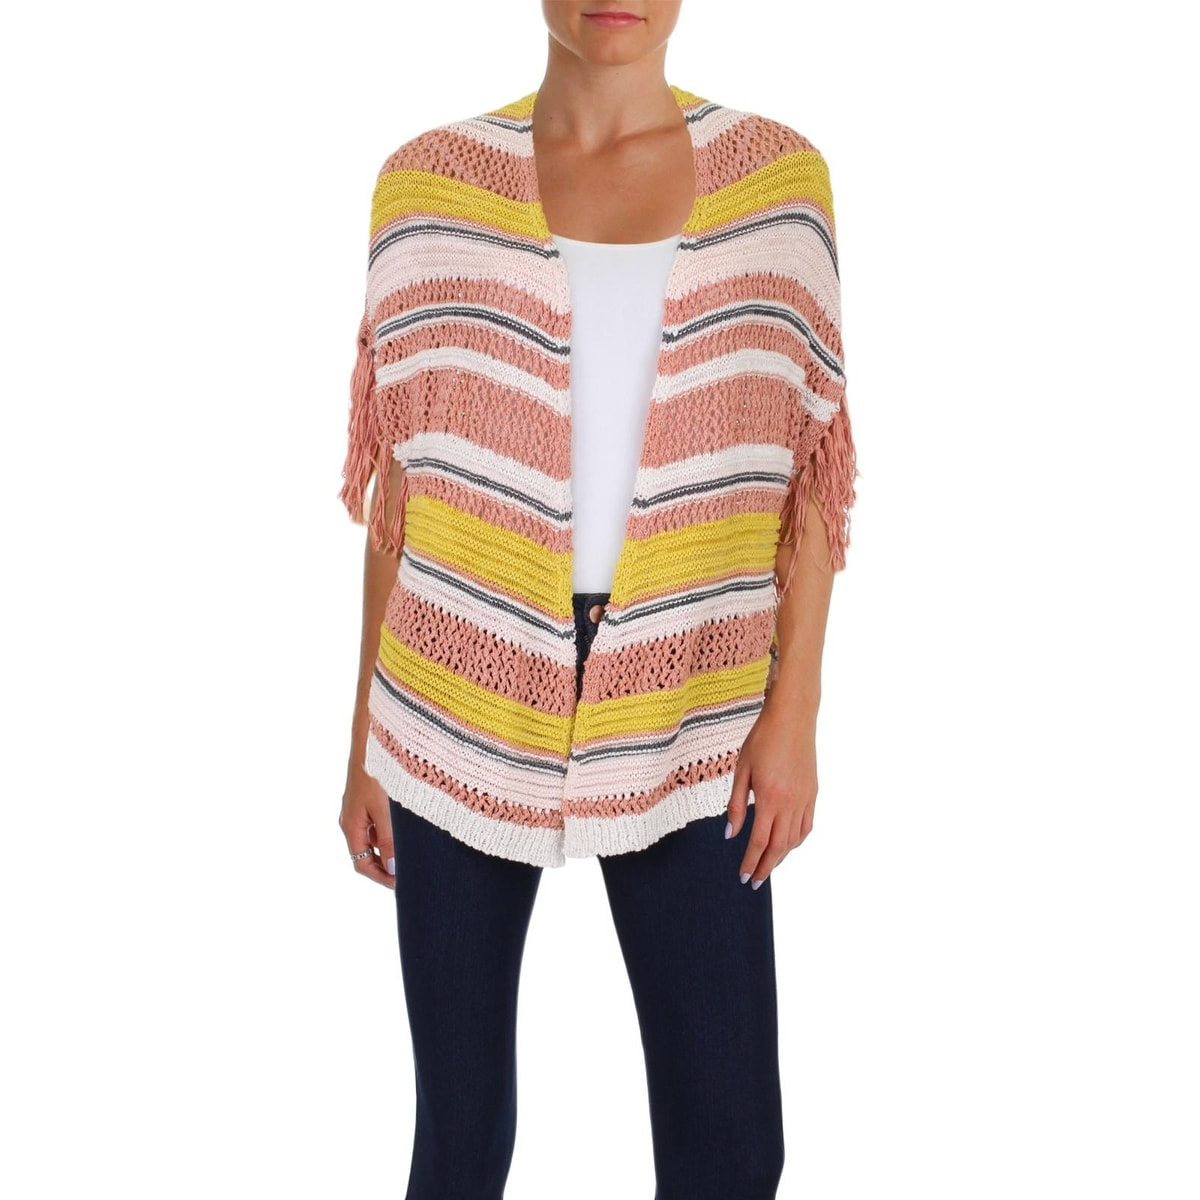 e216d91215691 Shop Jessica Simpson Womens Poncho Sweater Open Front Fringe Trim - S -  Free Shipping On Orders Over $45 - Overstock - 23486369